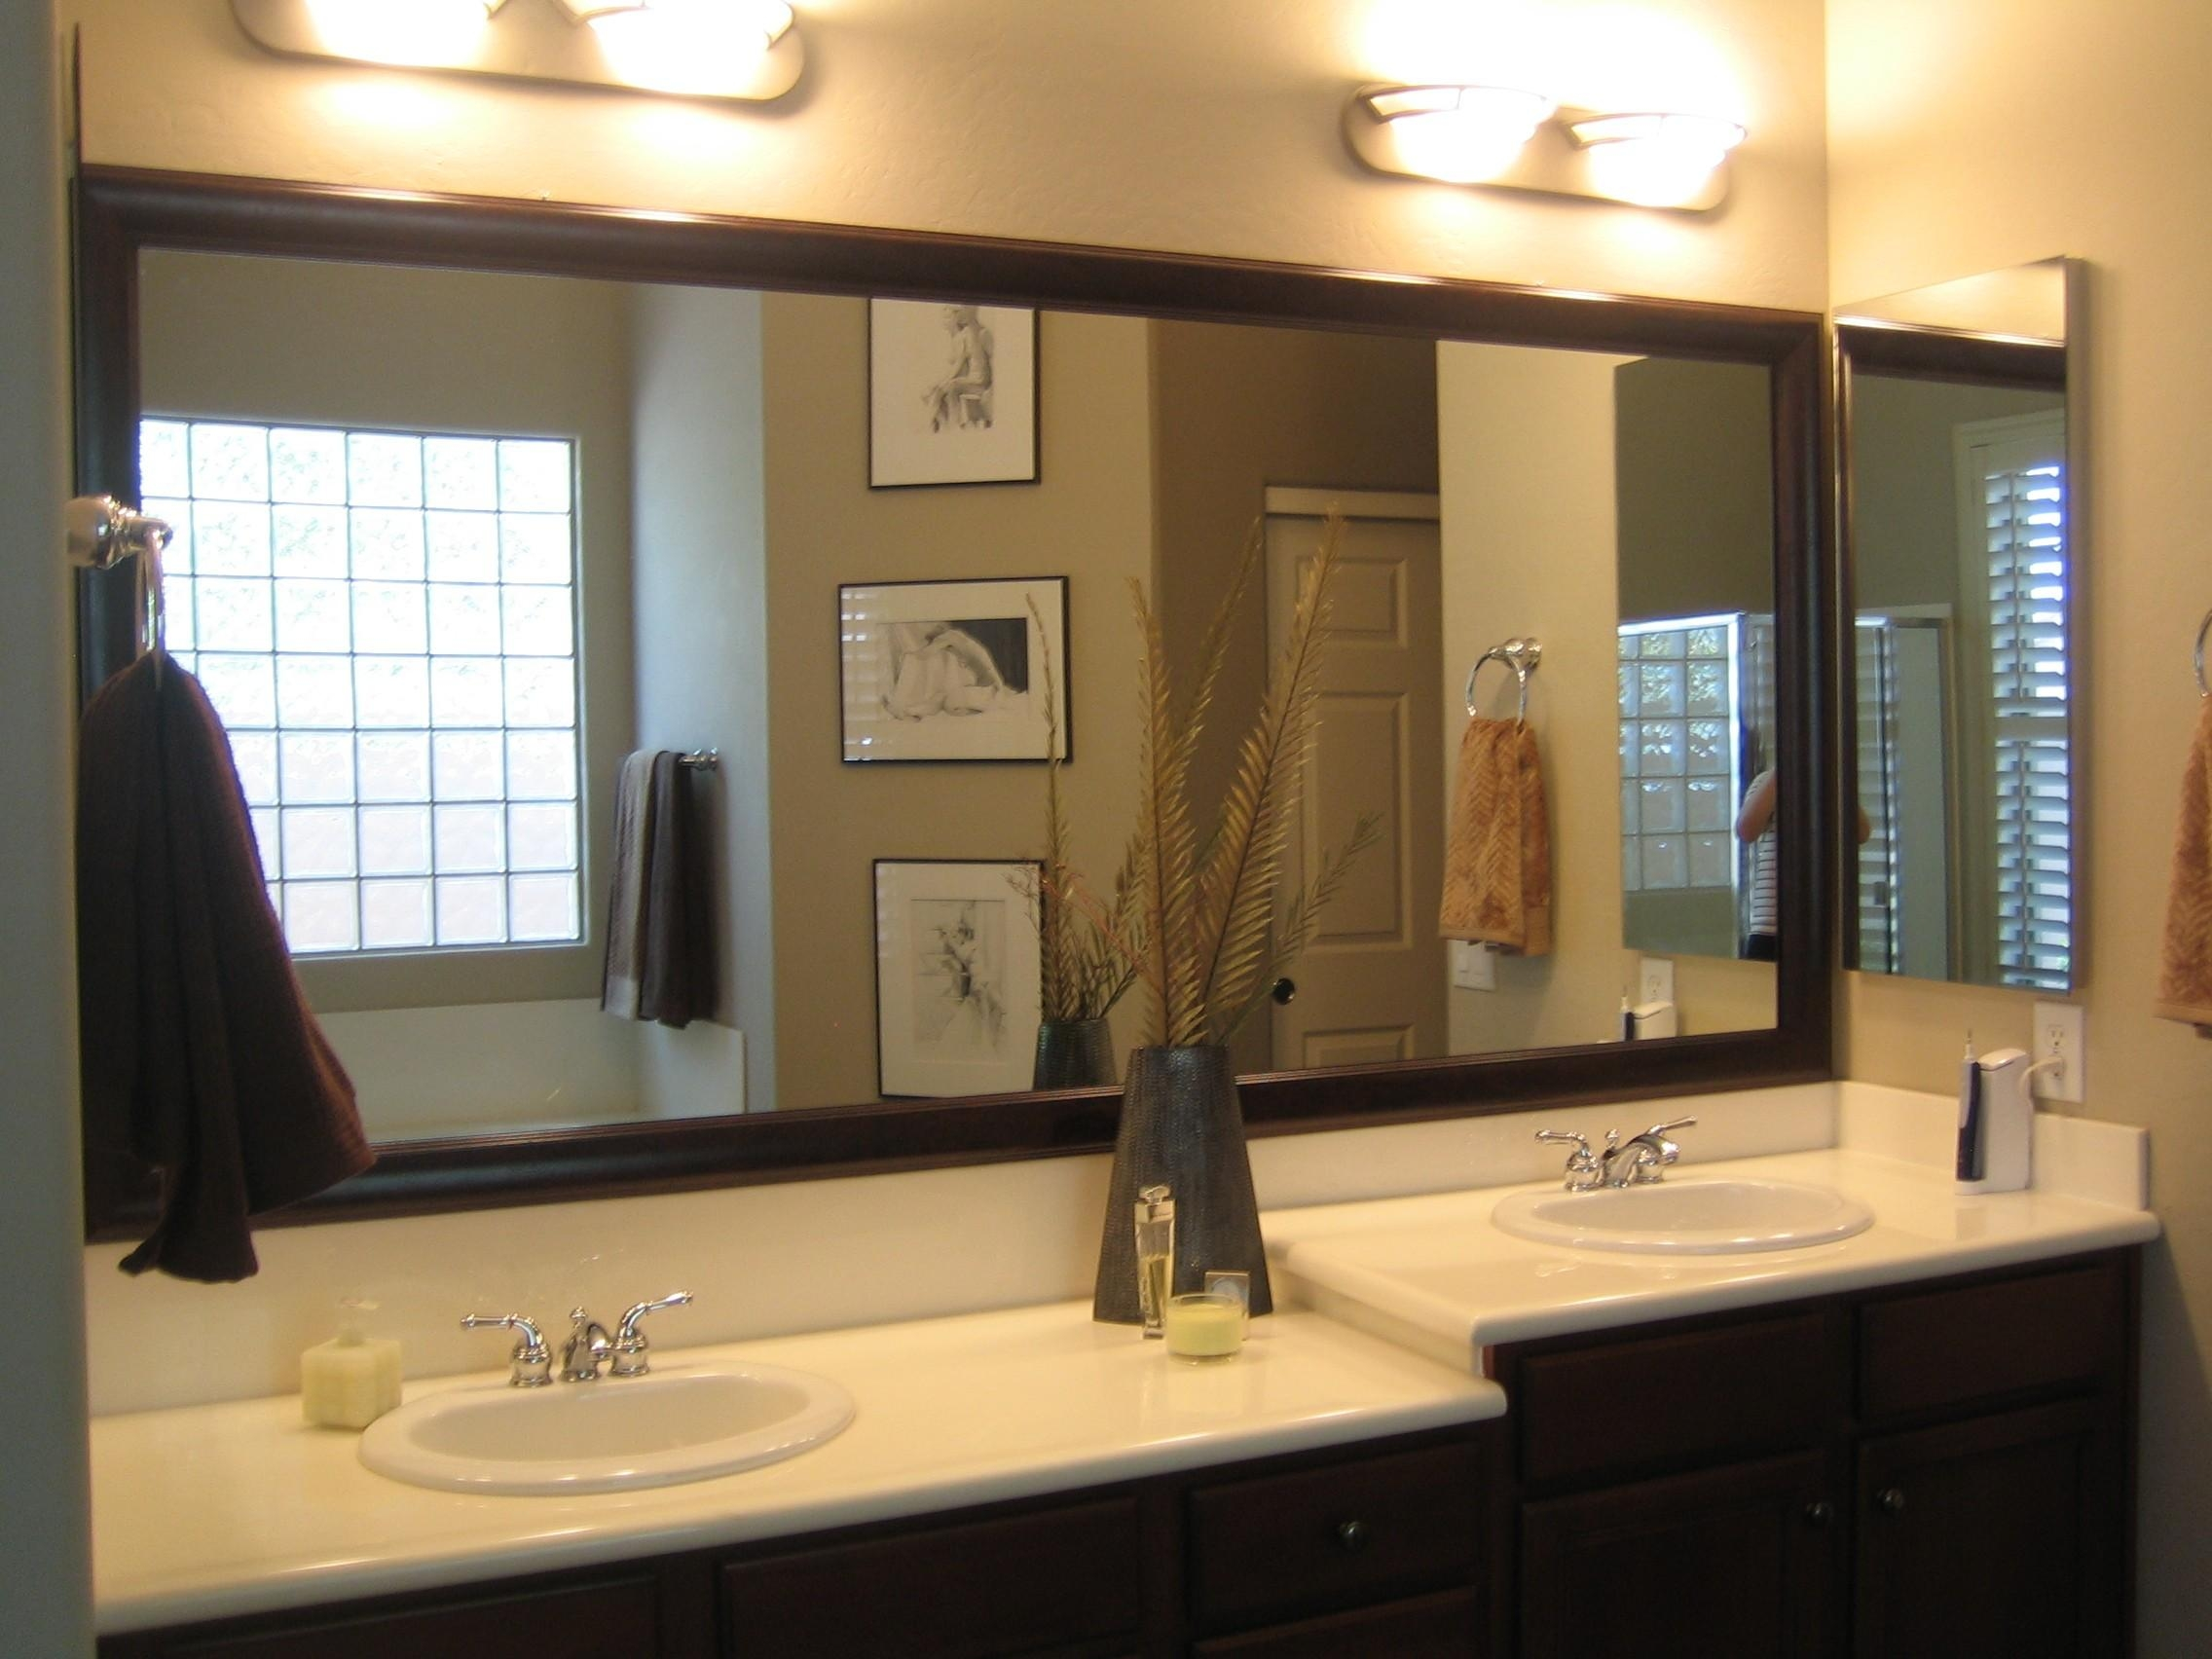 Vanity Mirror With Lights For Sale Tags : Adorable Bathroom Pertaining To Lights For Bathroom Mirrors (Image 19 of 20)